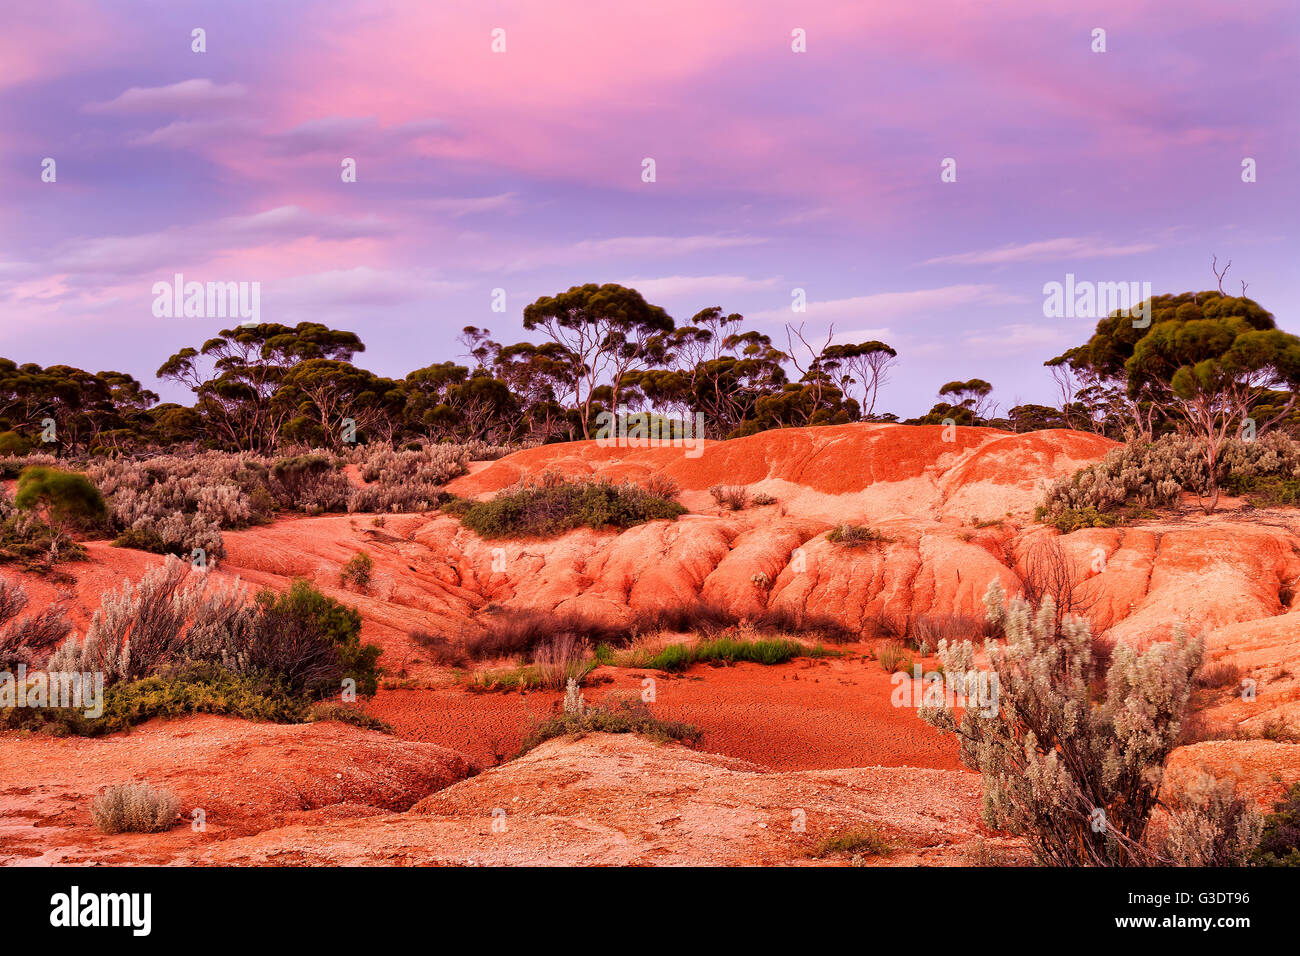 Dried billabong water hole in red soil australian outback of Western Australia at sunset. Dry arid ground with rare - Stock Image